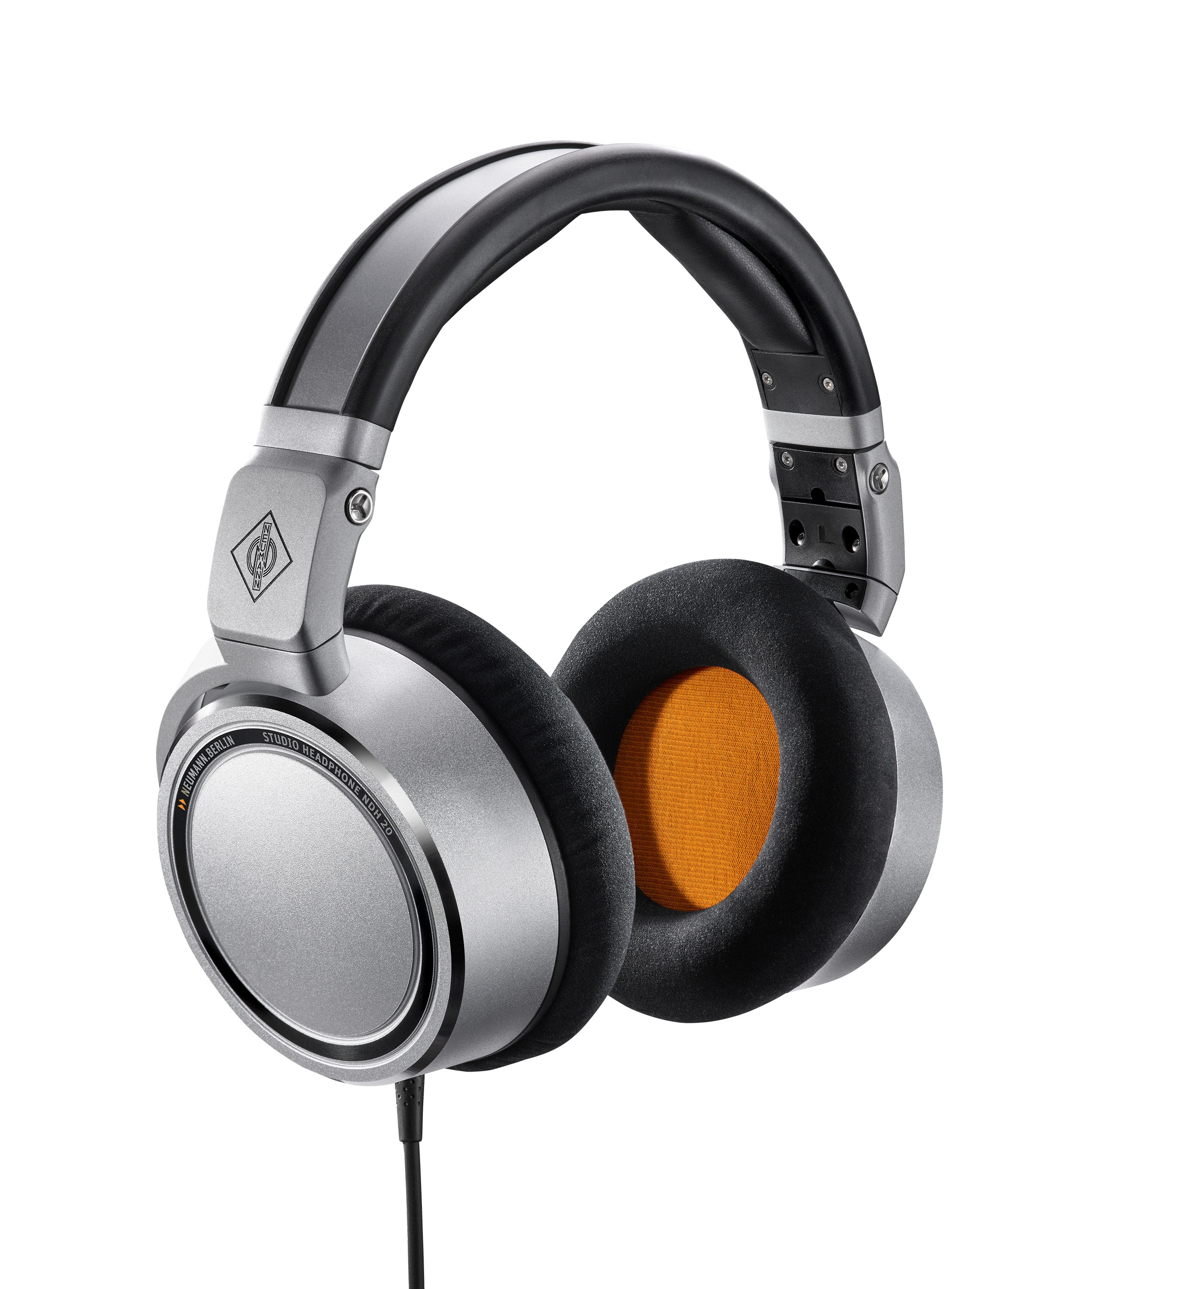 The Neumann NDH 20 studio headphones